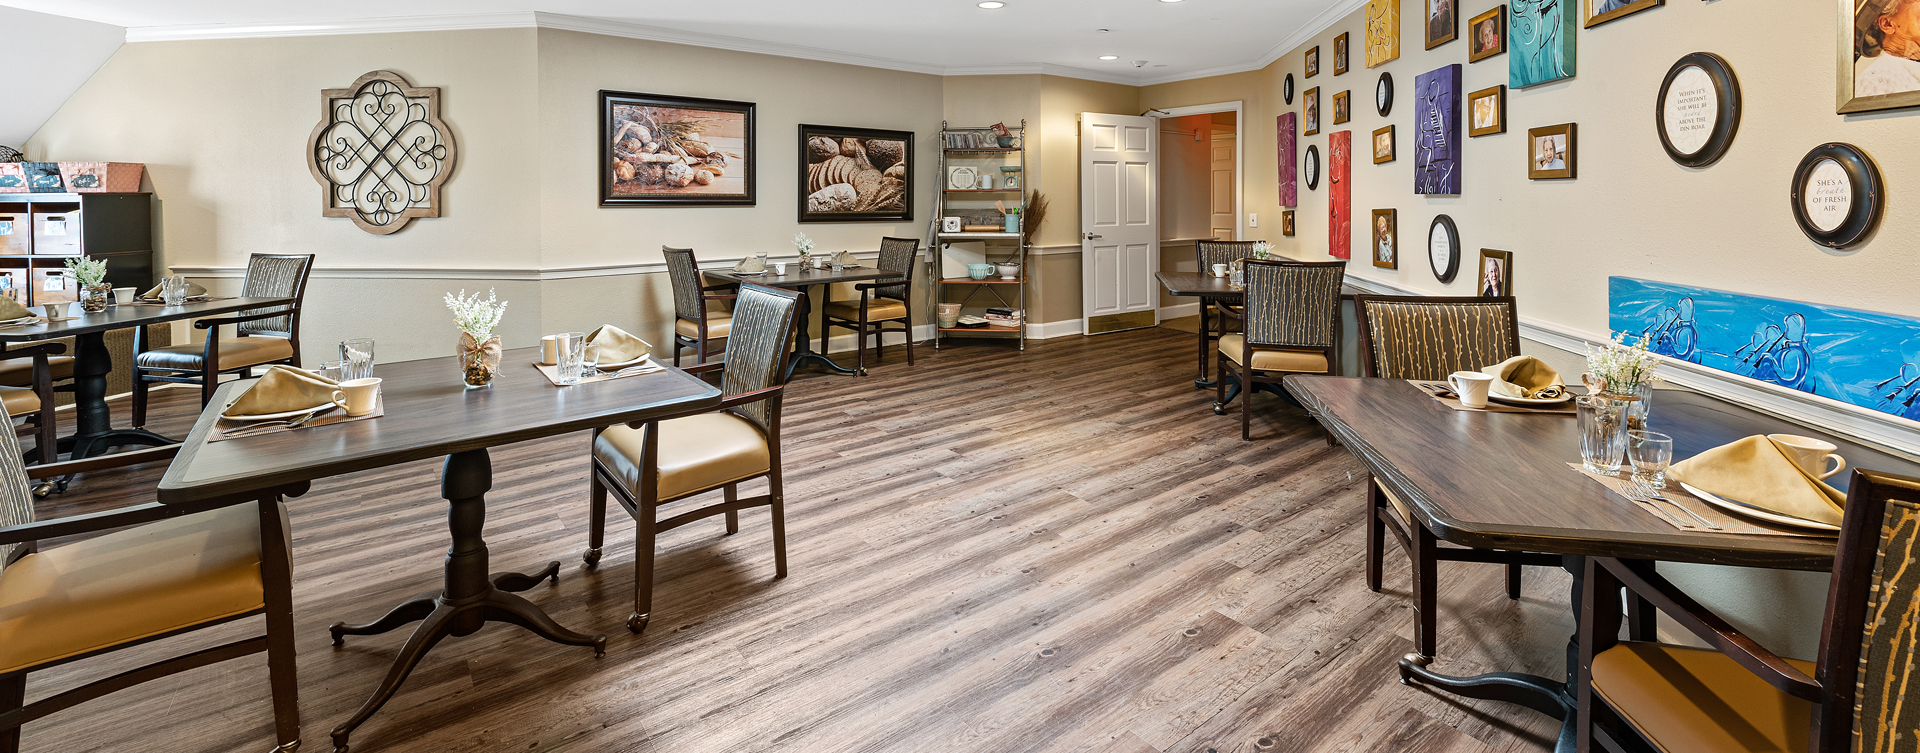 Mary B's country kitchen evokes a sense of home and reconnects residents to past life skills at Bickford of Bexley